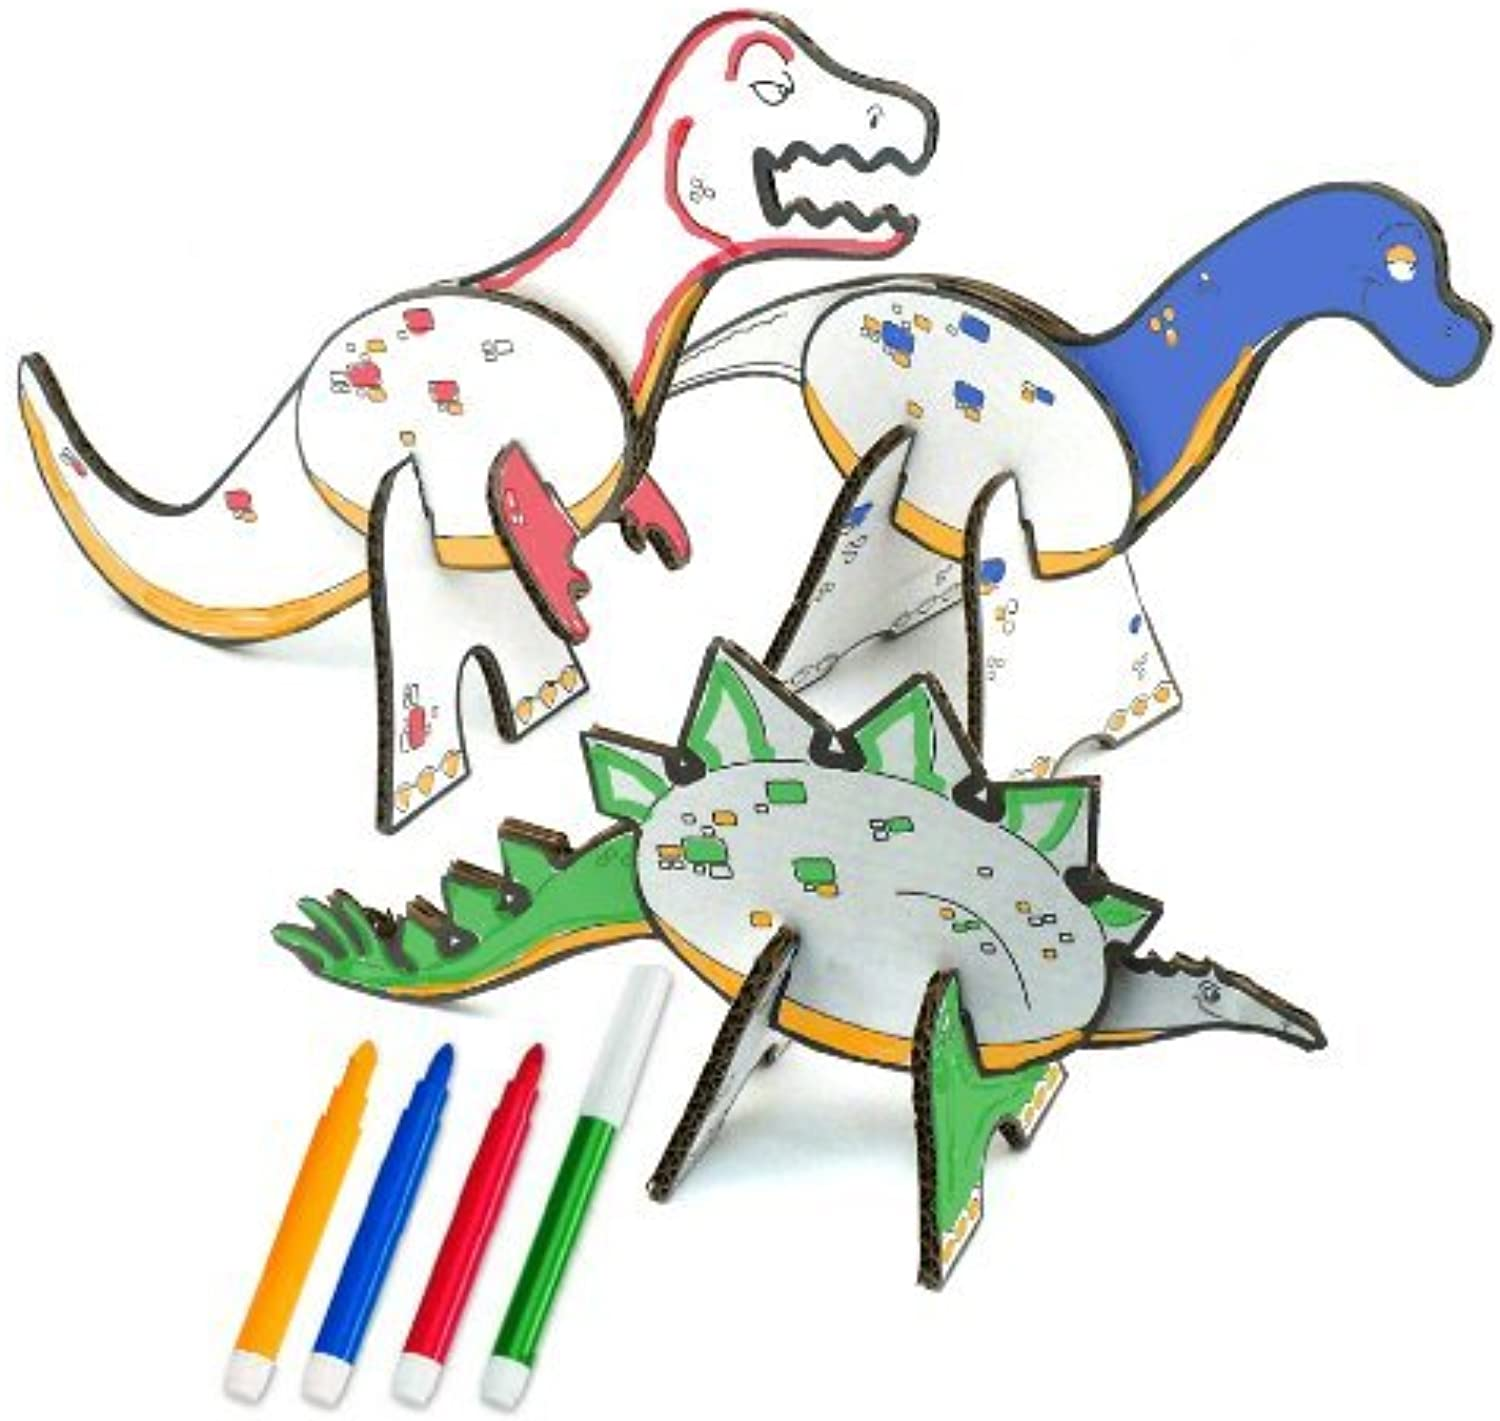 Topozoo Dinosaur Create and color Playset by Topozoo